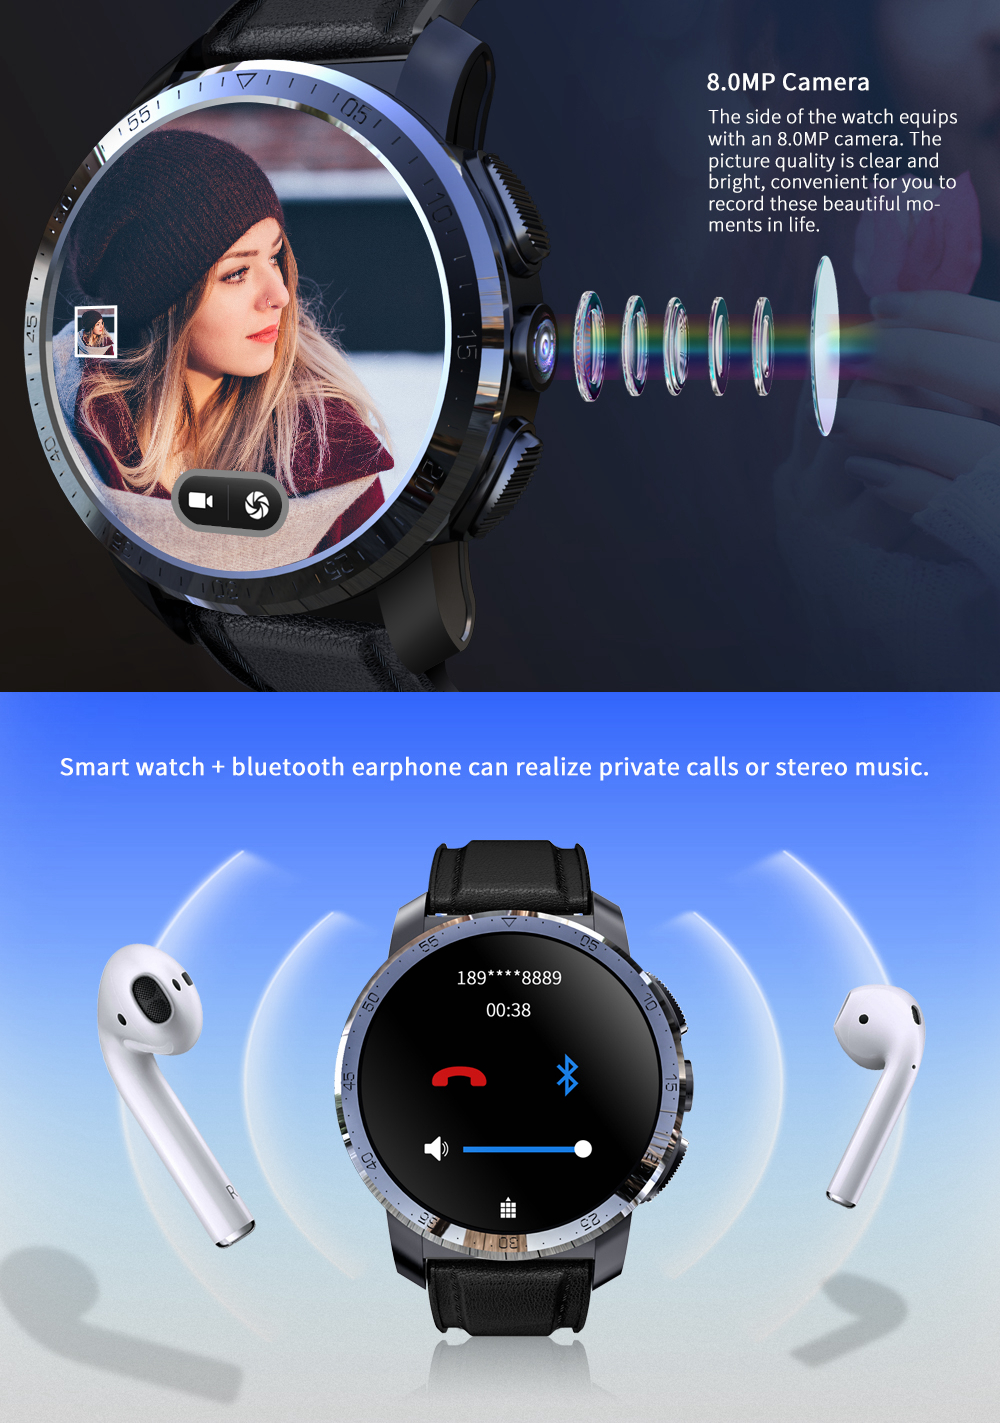 Kospet Optimus Pro Двухчиповая система 3G + 32G 4G-LTE Watch Phone AMOLED 8.0MP 800 мАч GPS Google Play Смарт-часы - фото 10